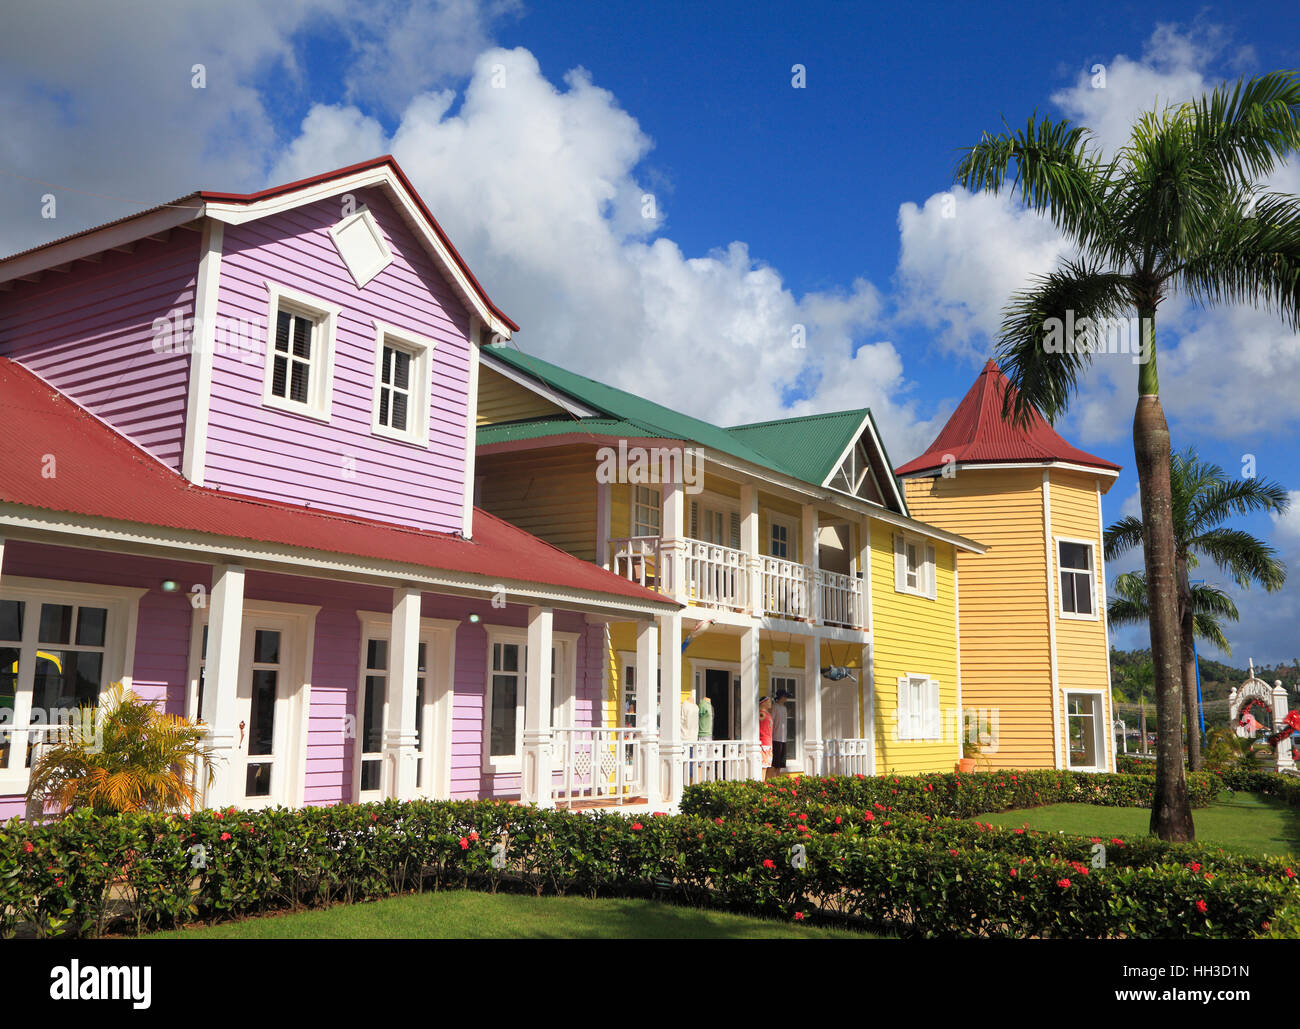 The wooden houses painted in Caribbean bright colors in Samana, Dominican Republic - Stock Image